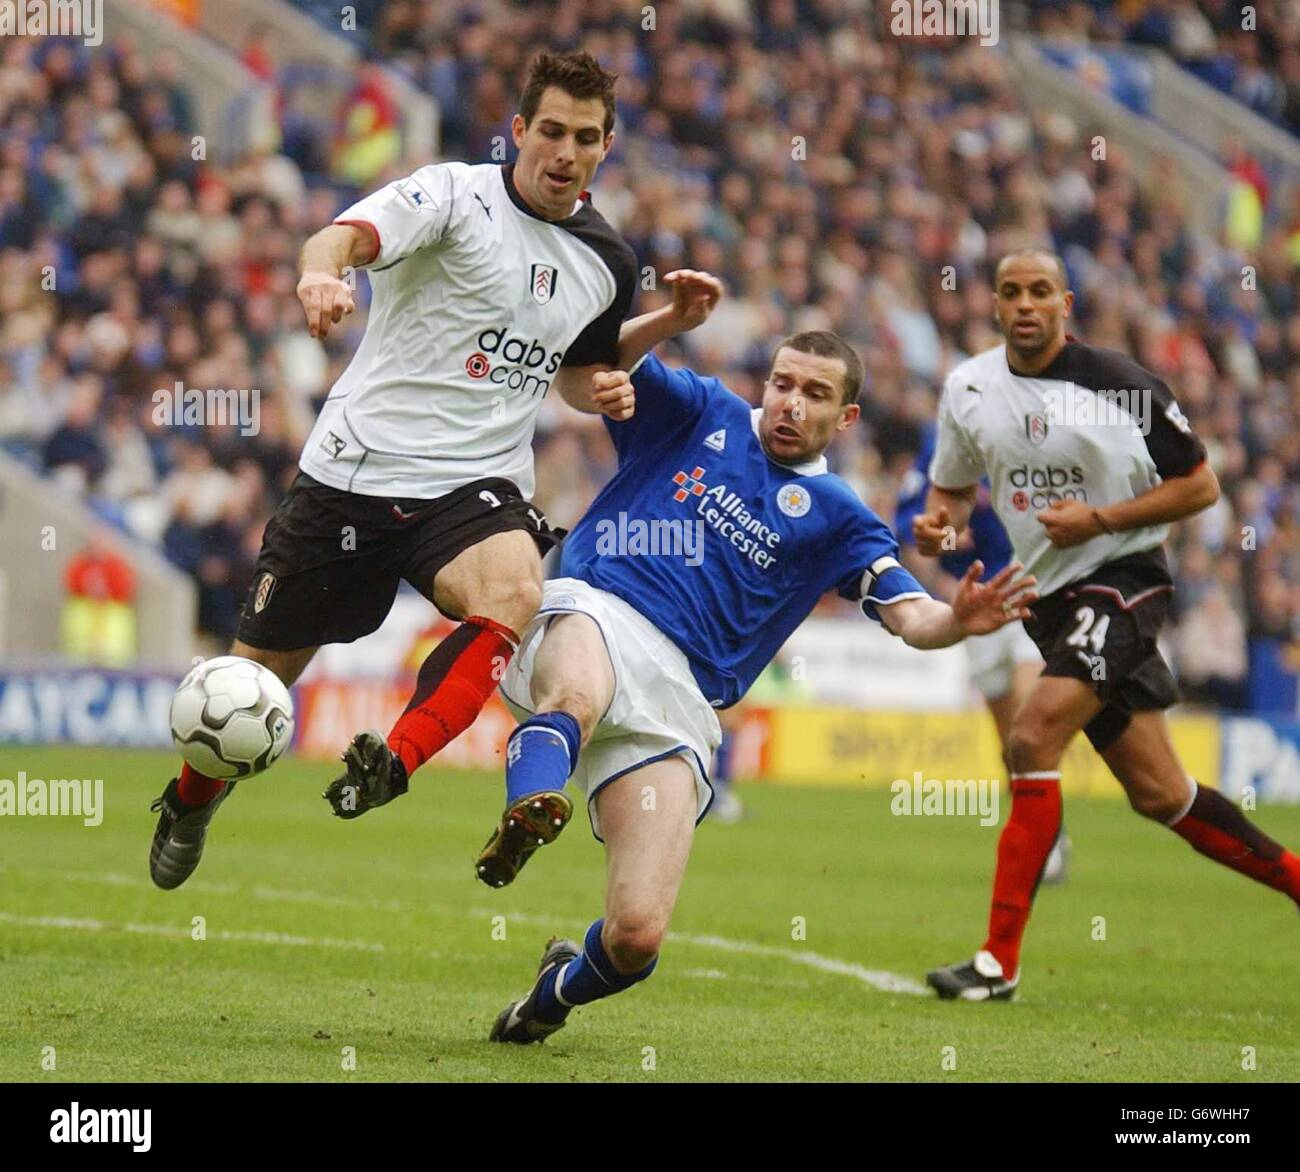 LEICESTER CITY V FULHAM Stock Photo - Alamy